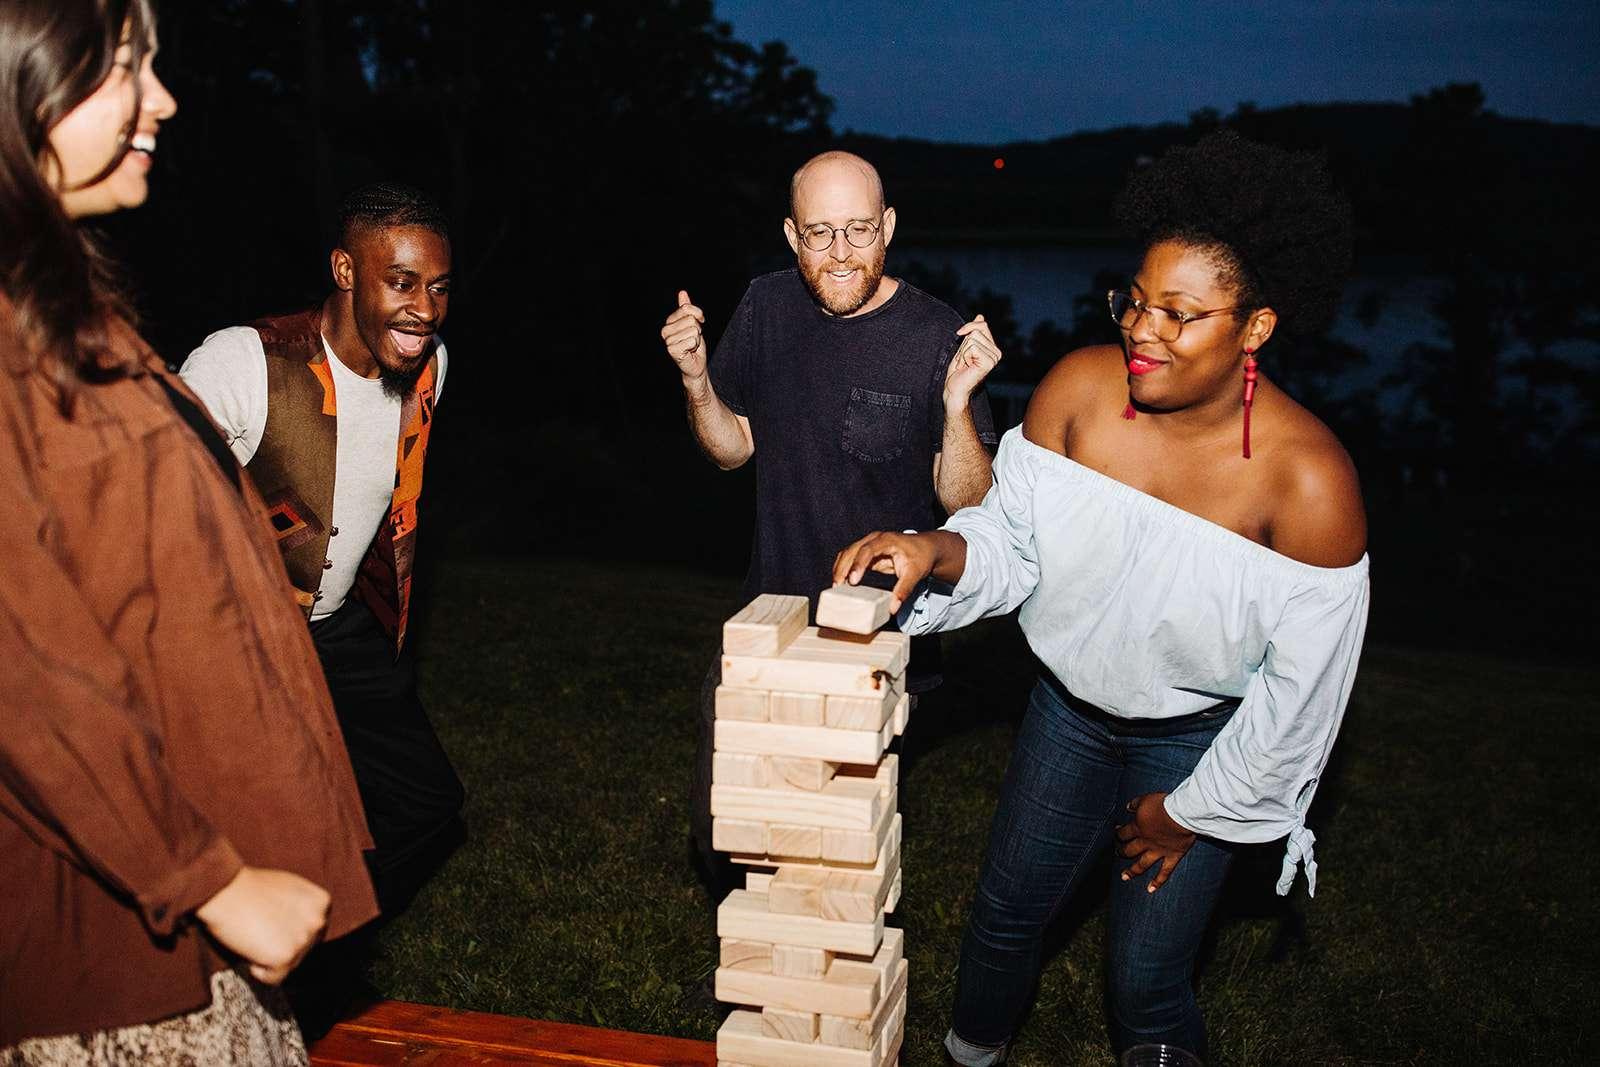 Four guests at a party playing giant Jenga